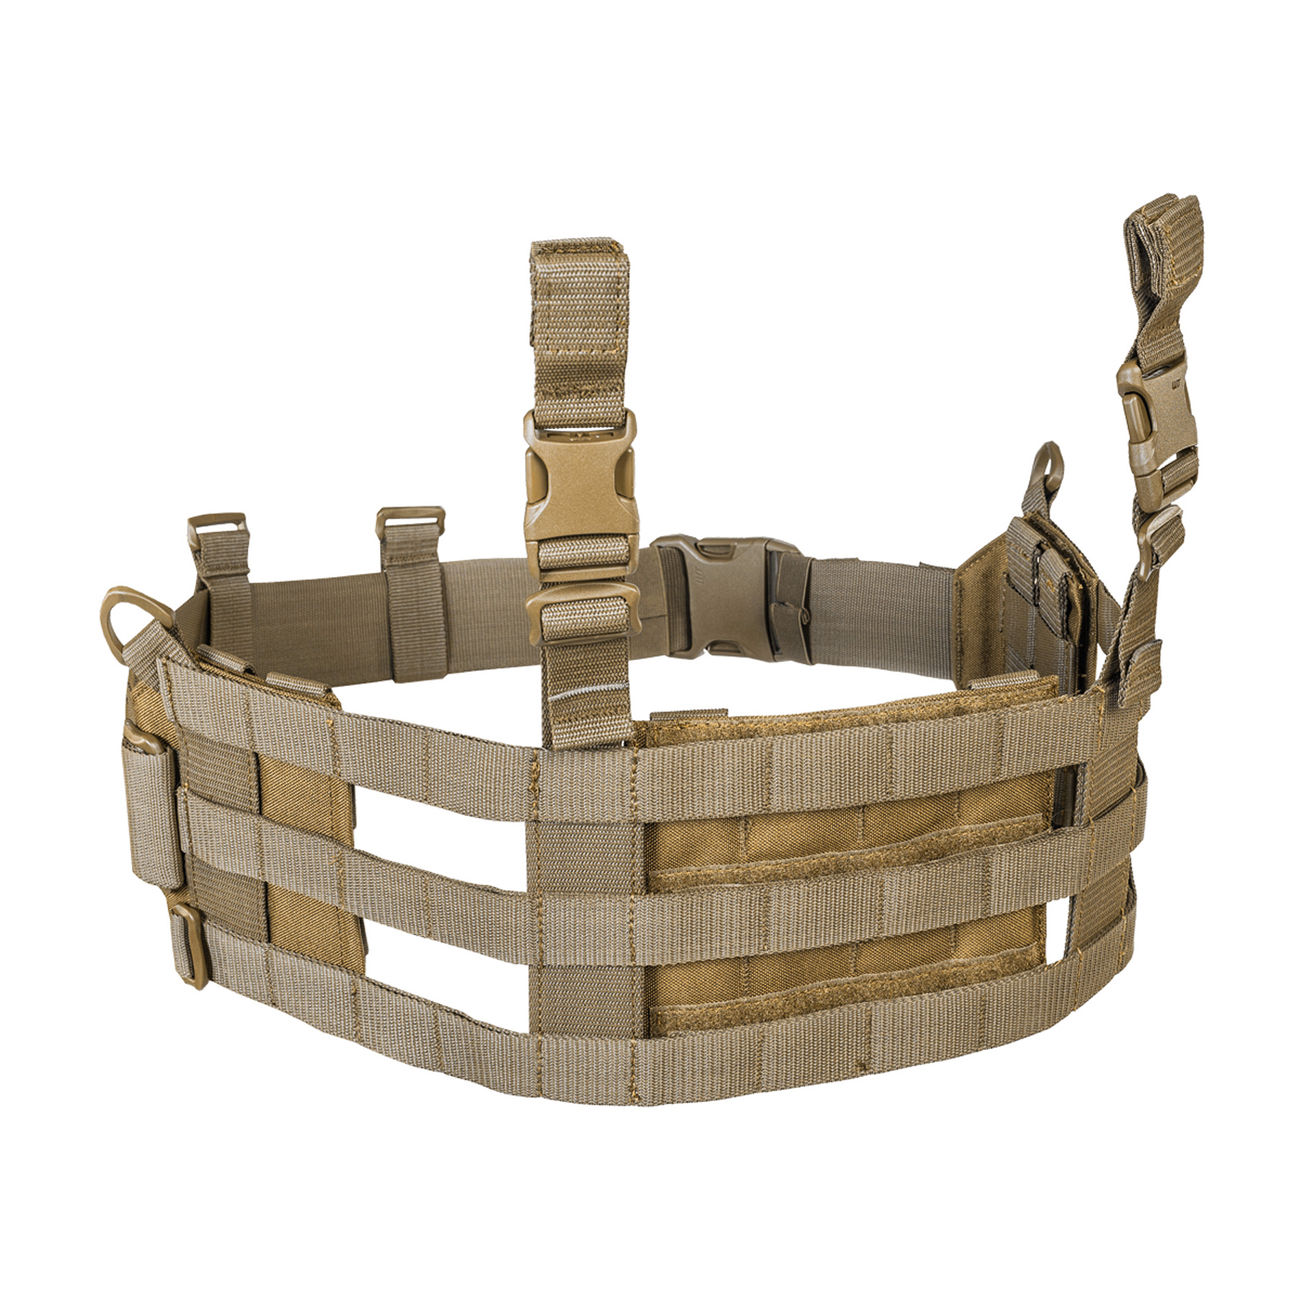 TT FL Chest Rig MK II coyote brown 1